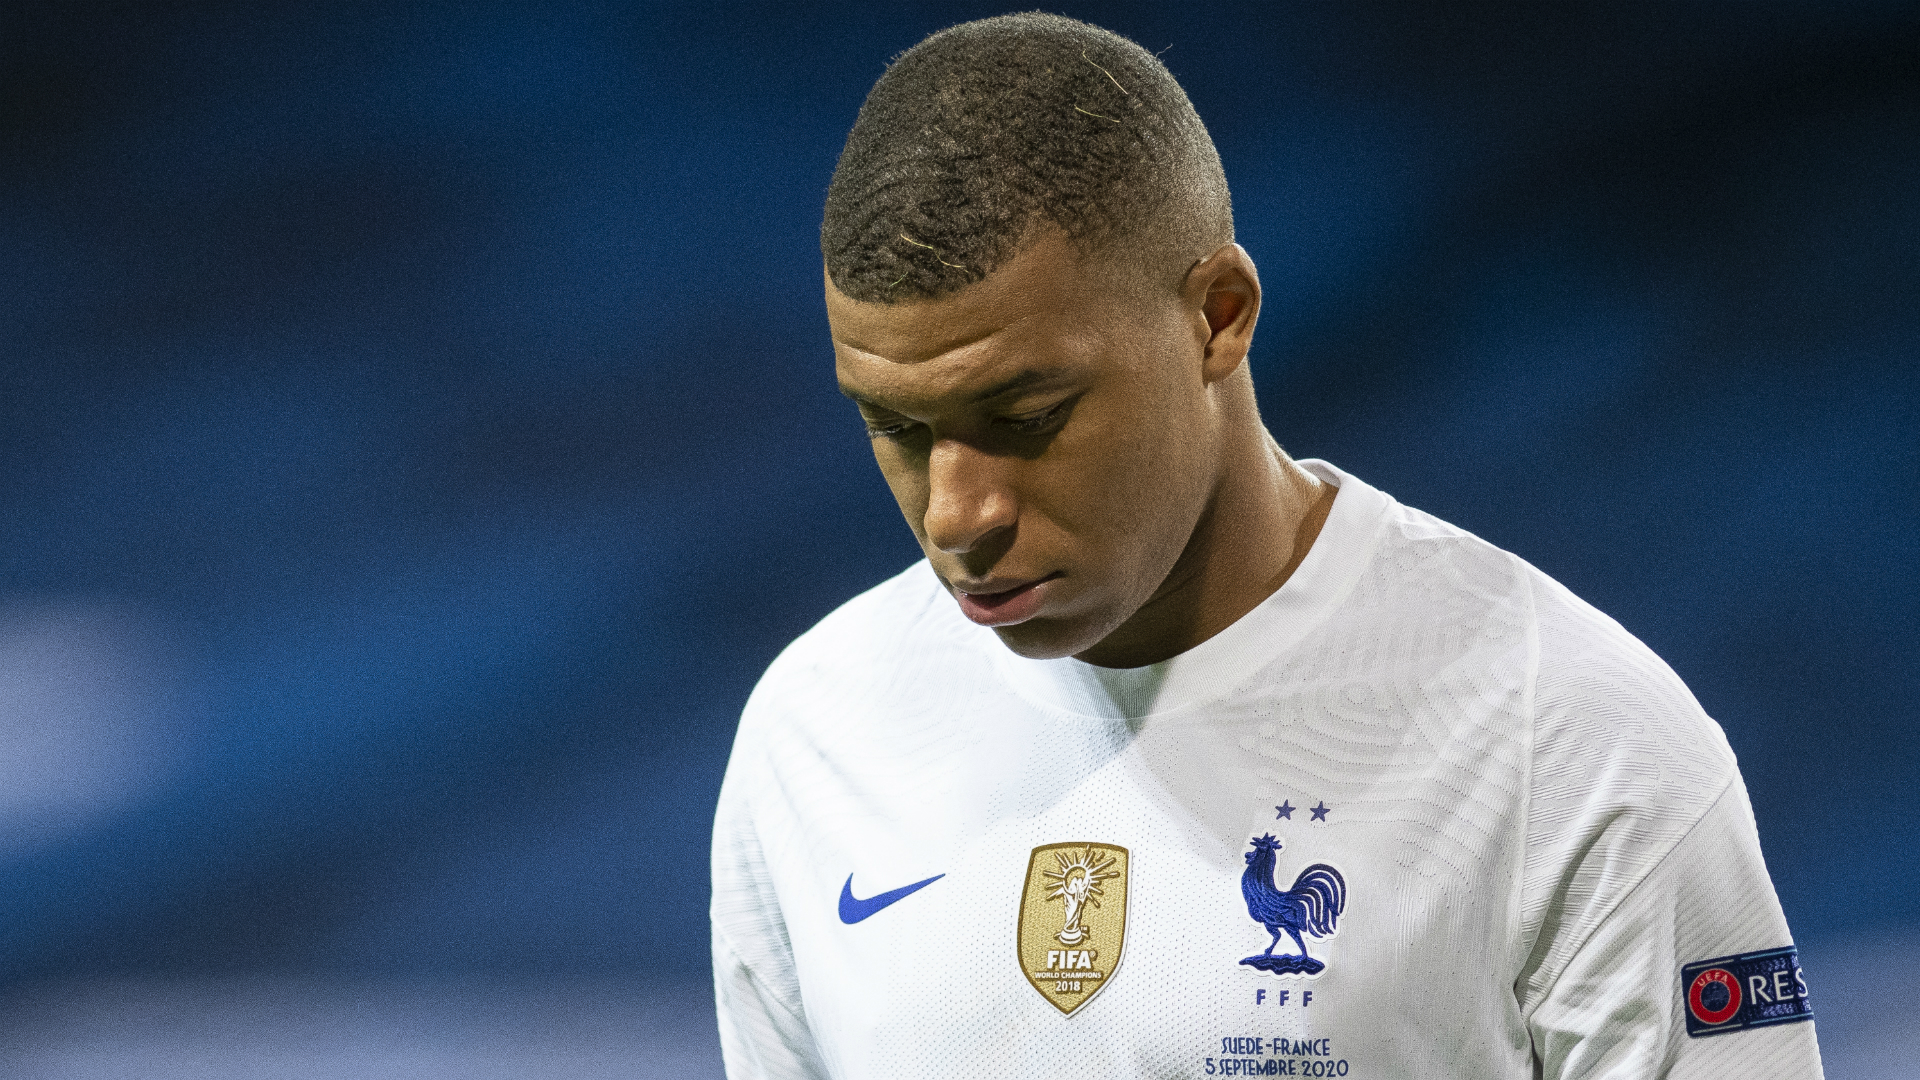 France boss Deschamps unwilling to take risks with Mbappe